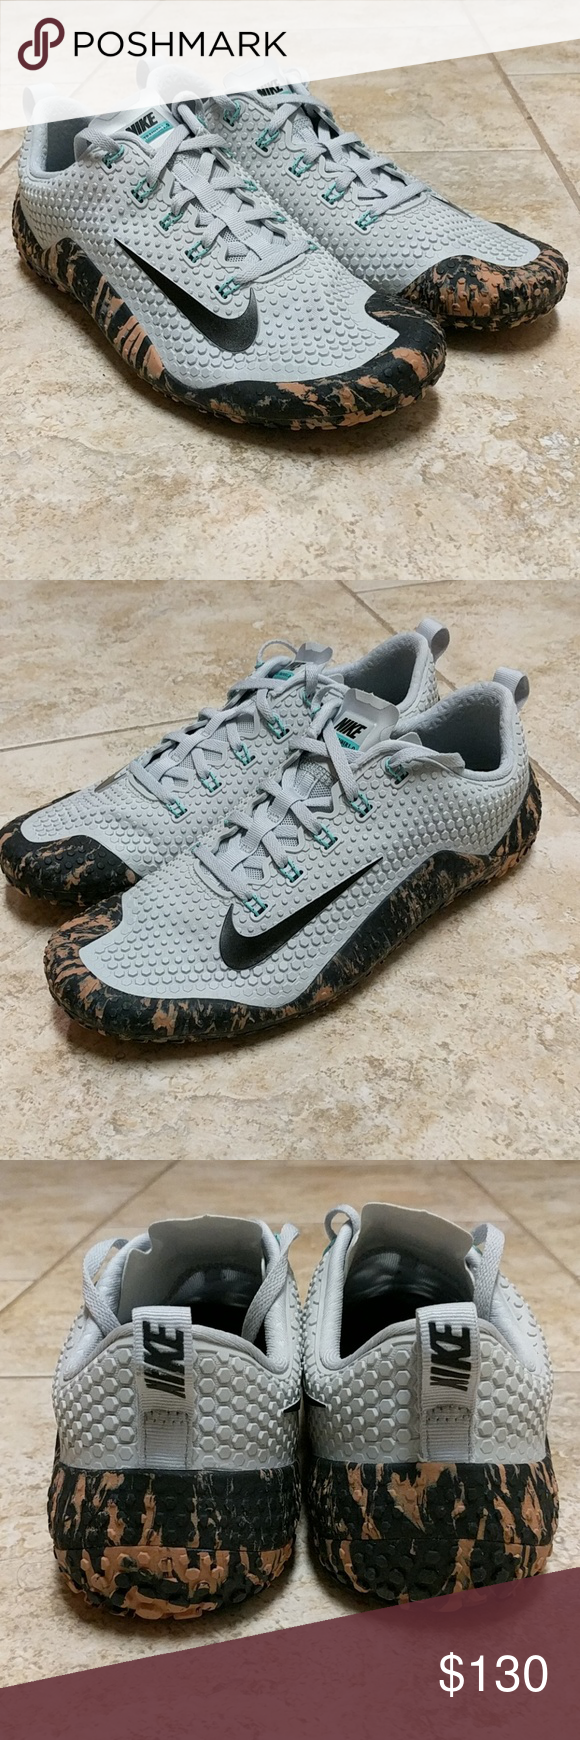 33e6902c84ba ... official nike free trainer 1.0 platinum gum camo 10 11.5 brand new  without box. will